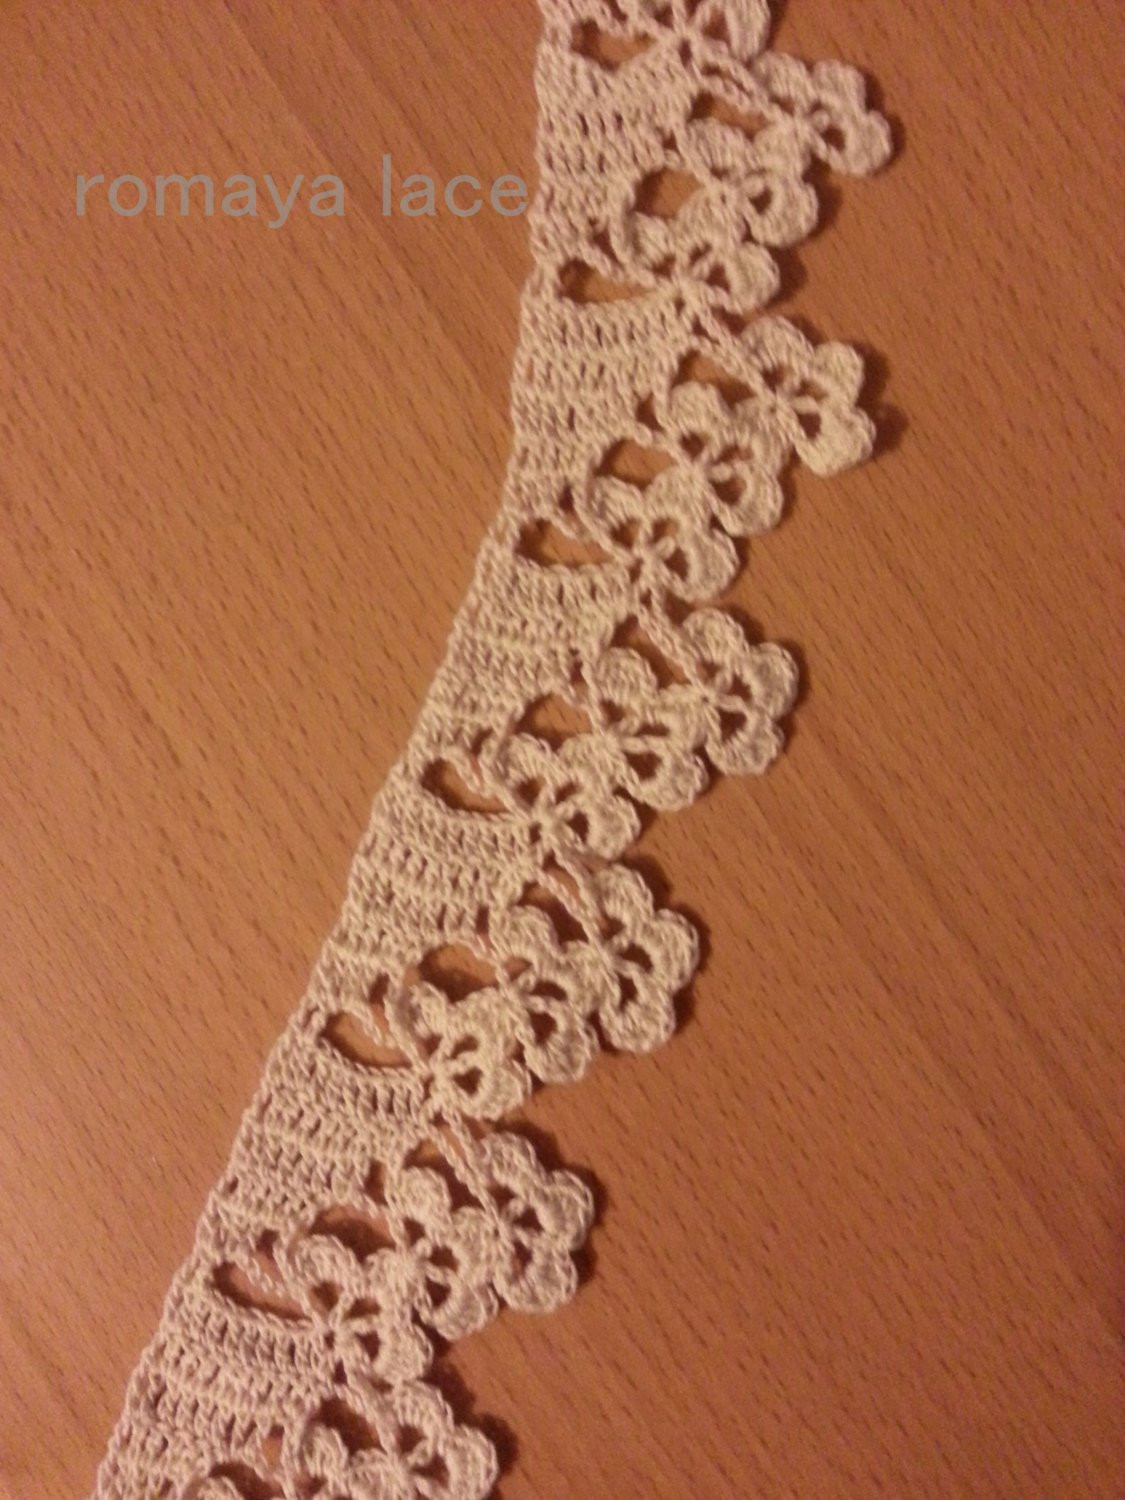 Crochet Lace Edging Elegant Handmade Lace Crochet Trim Crochet Edging Lace Border Of Charming 48 Images Crochet Lace Edging